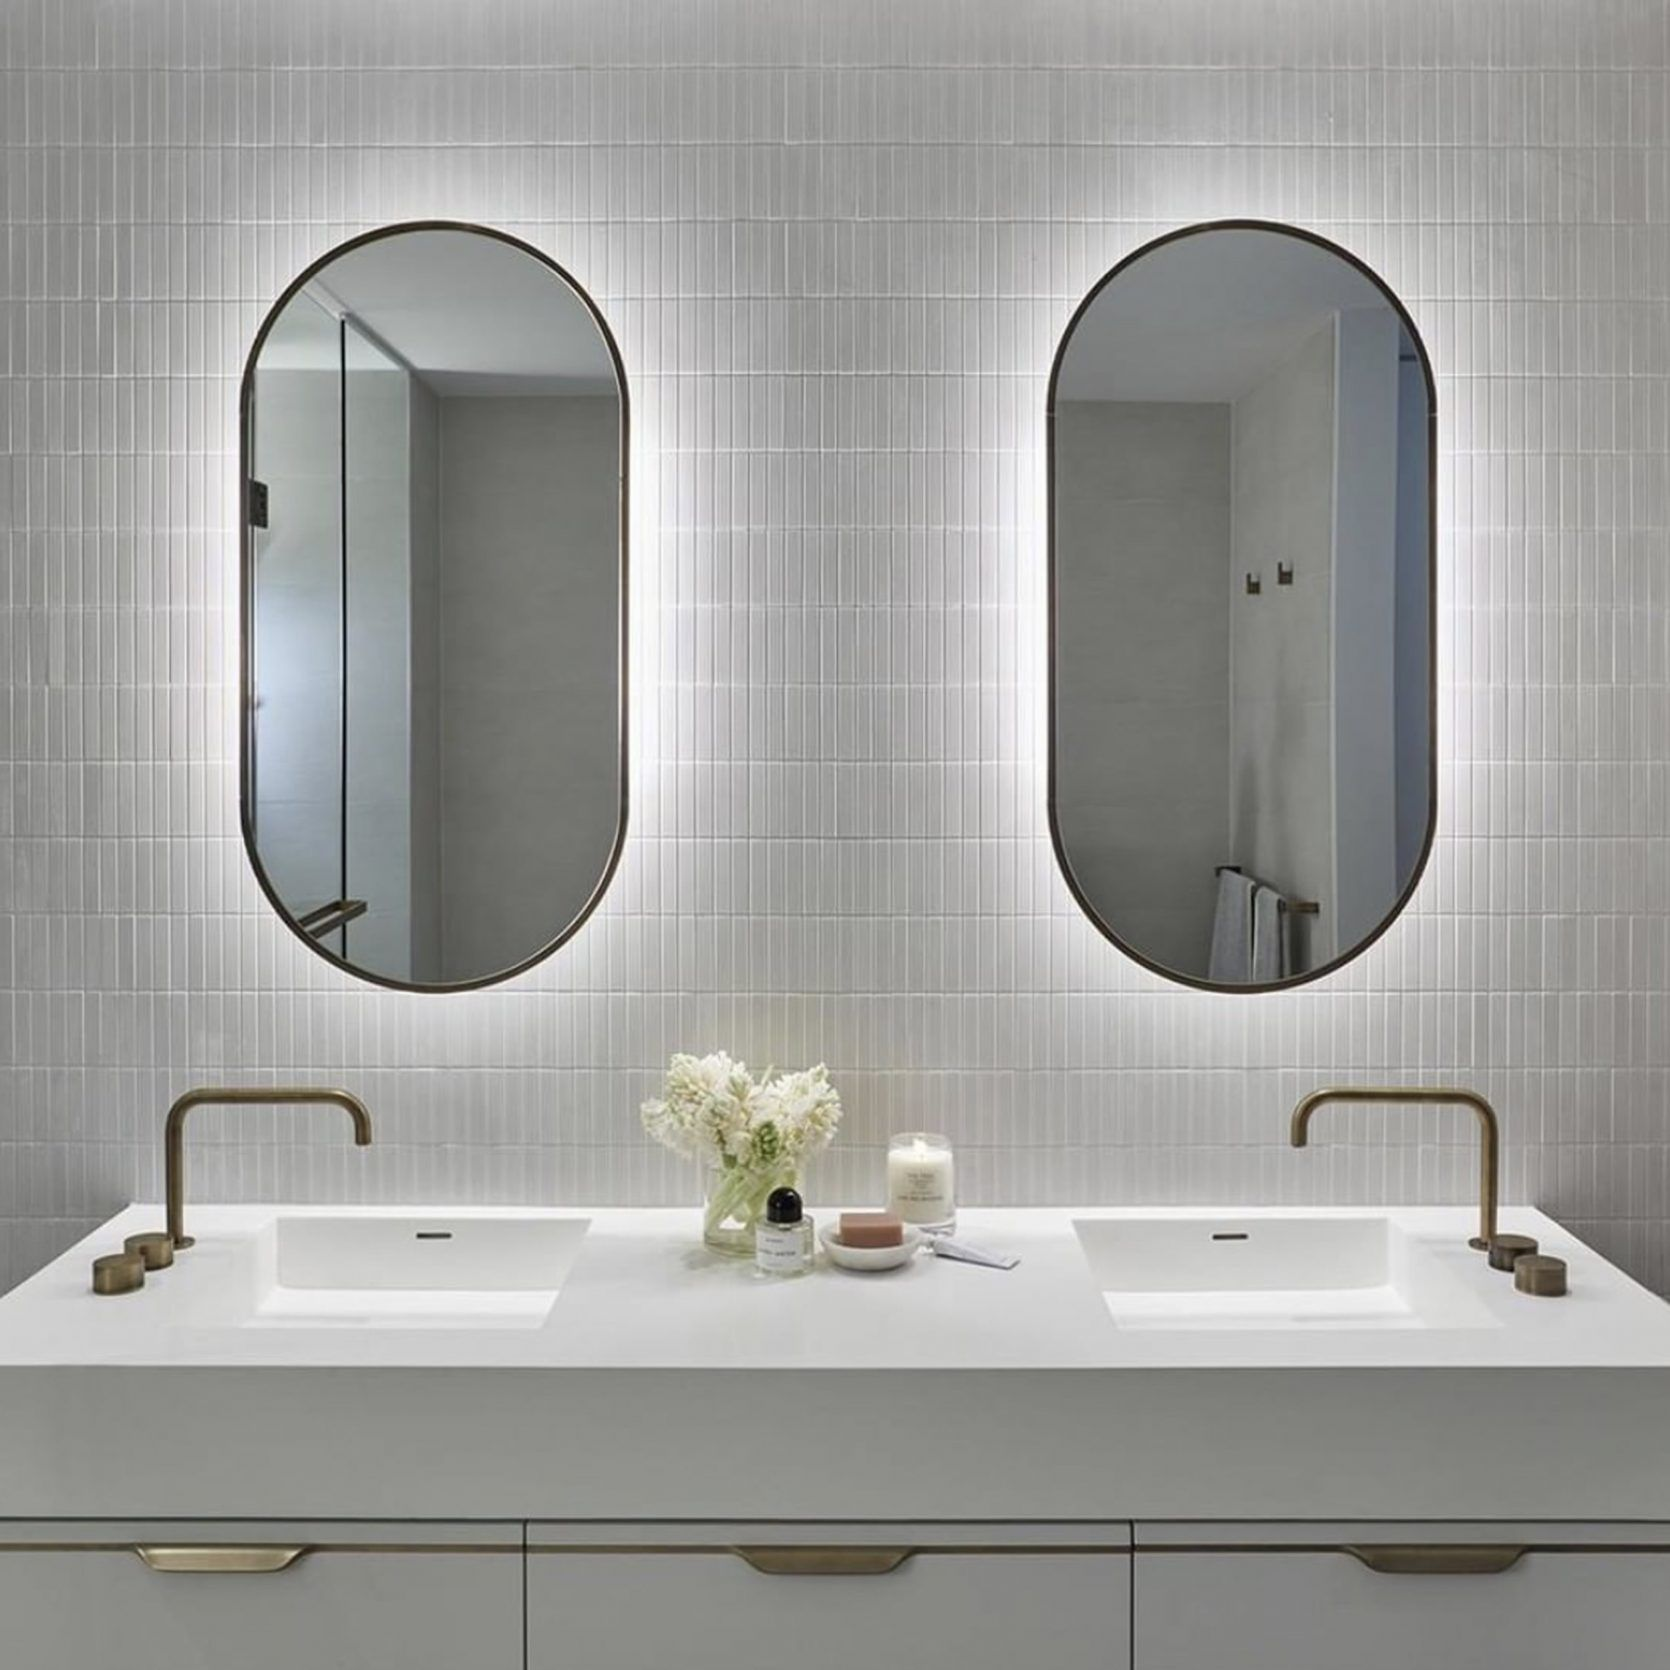 10 of the Most Exciting Bathroom Design Trends for 2019 ...